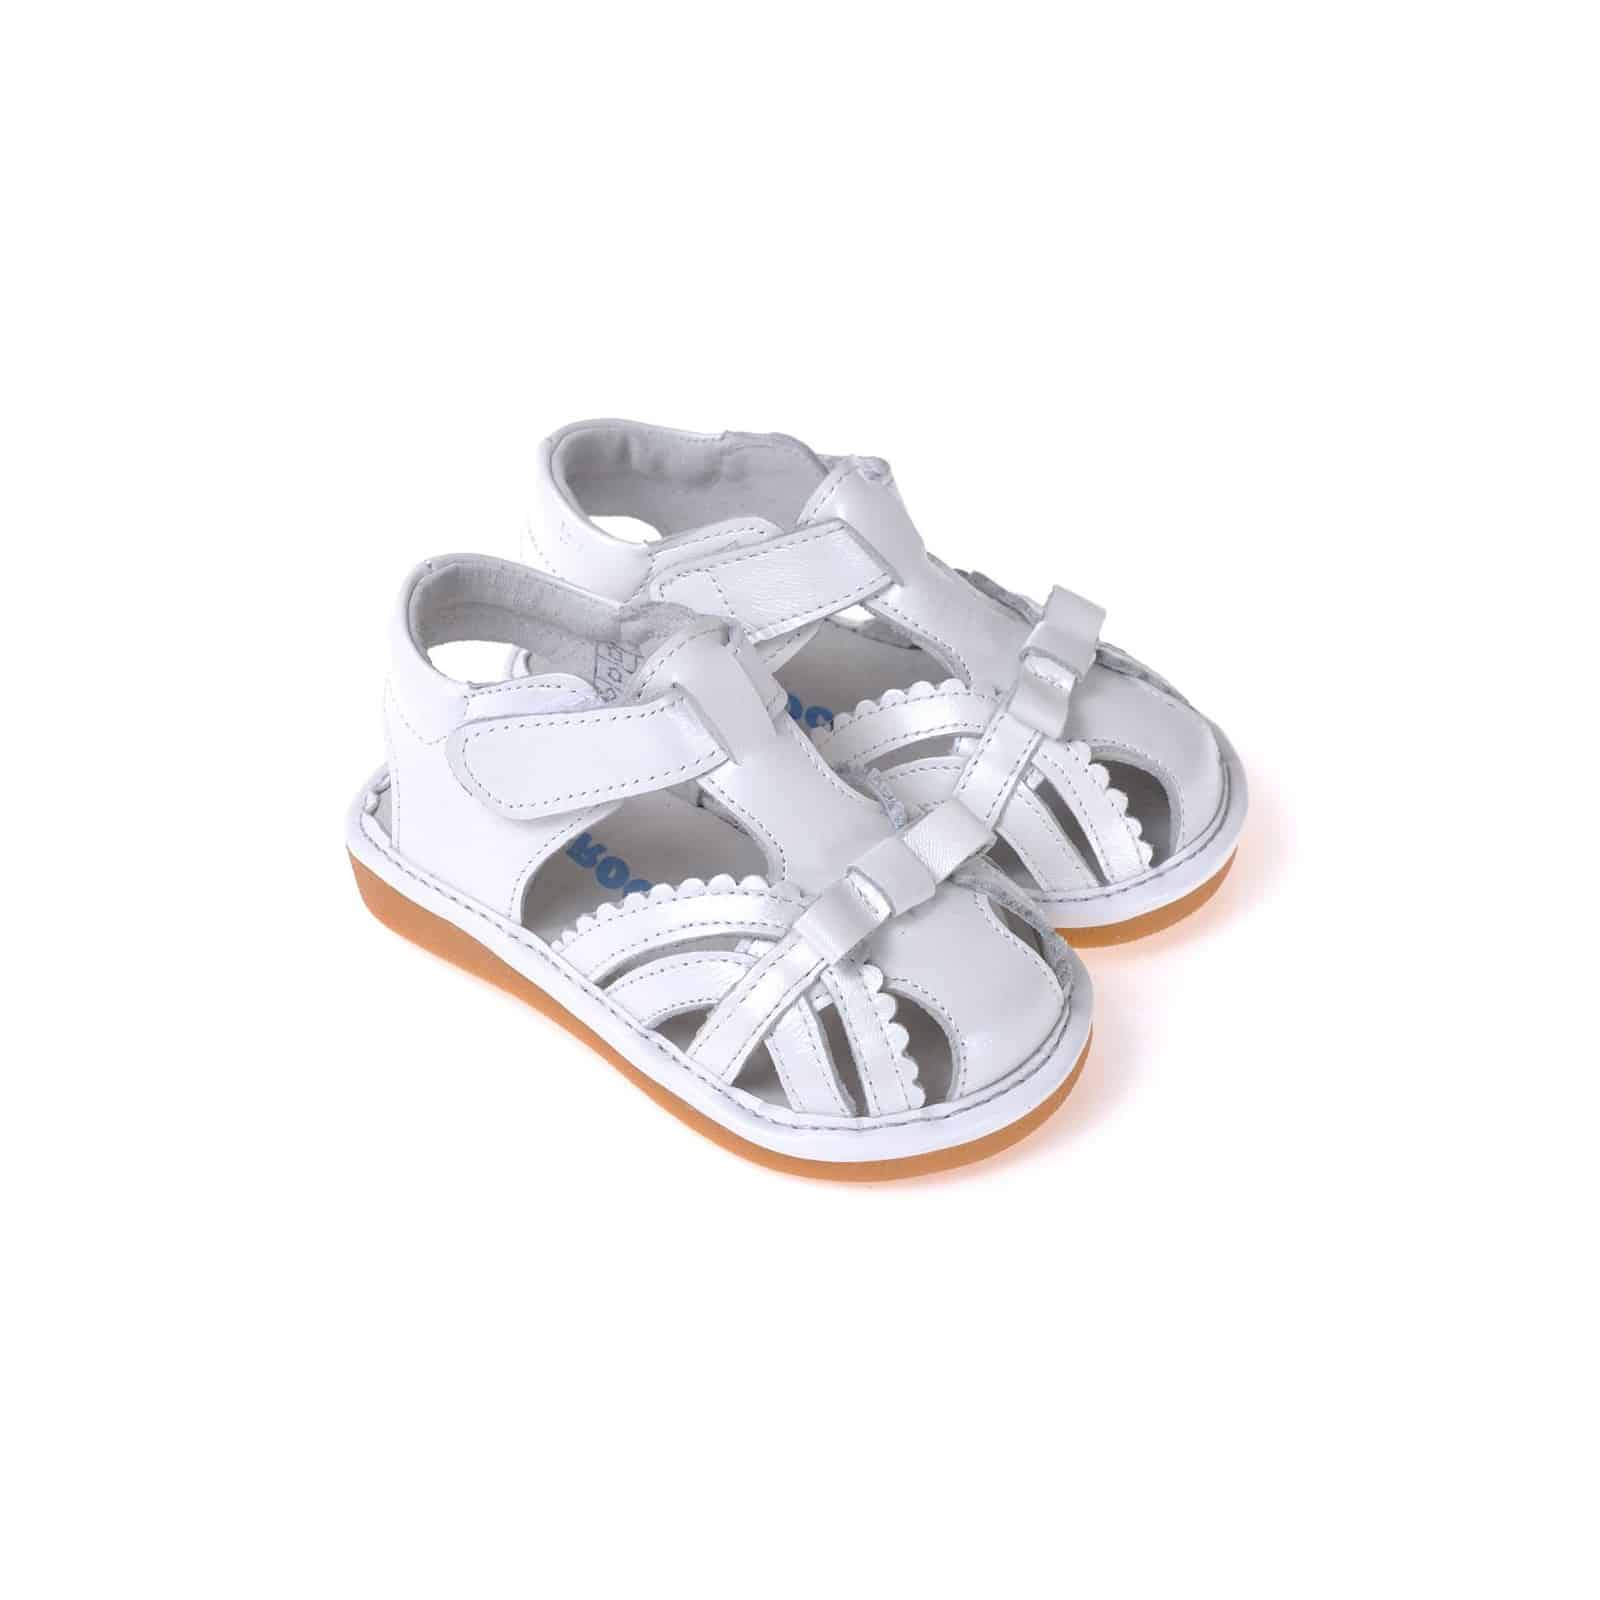 Squeaky shoes gt girls squeaky shoes gt caroch squeaky leather toddler